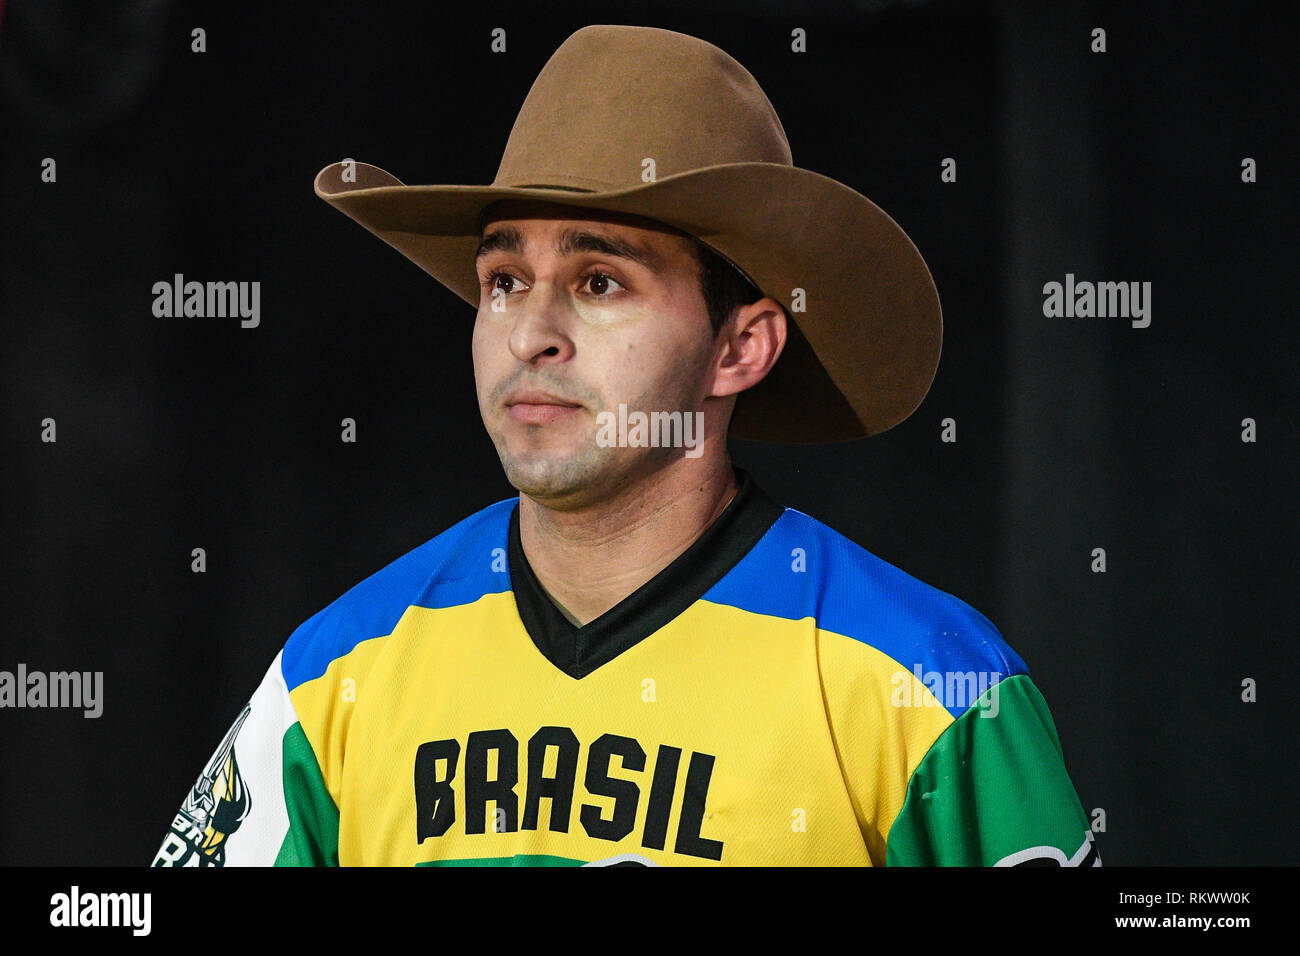 Arlington, Texas, USA. 10th Feb, 2019. CLAUDIO MONTANHA JR is introduced to the crowd before the second day of competition at AT&T Stadium in Arlington, Texas. Credit: Amy Sanderson/ZUMA Wire/Alamy Live News - Stock Image